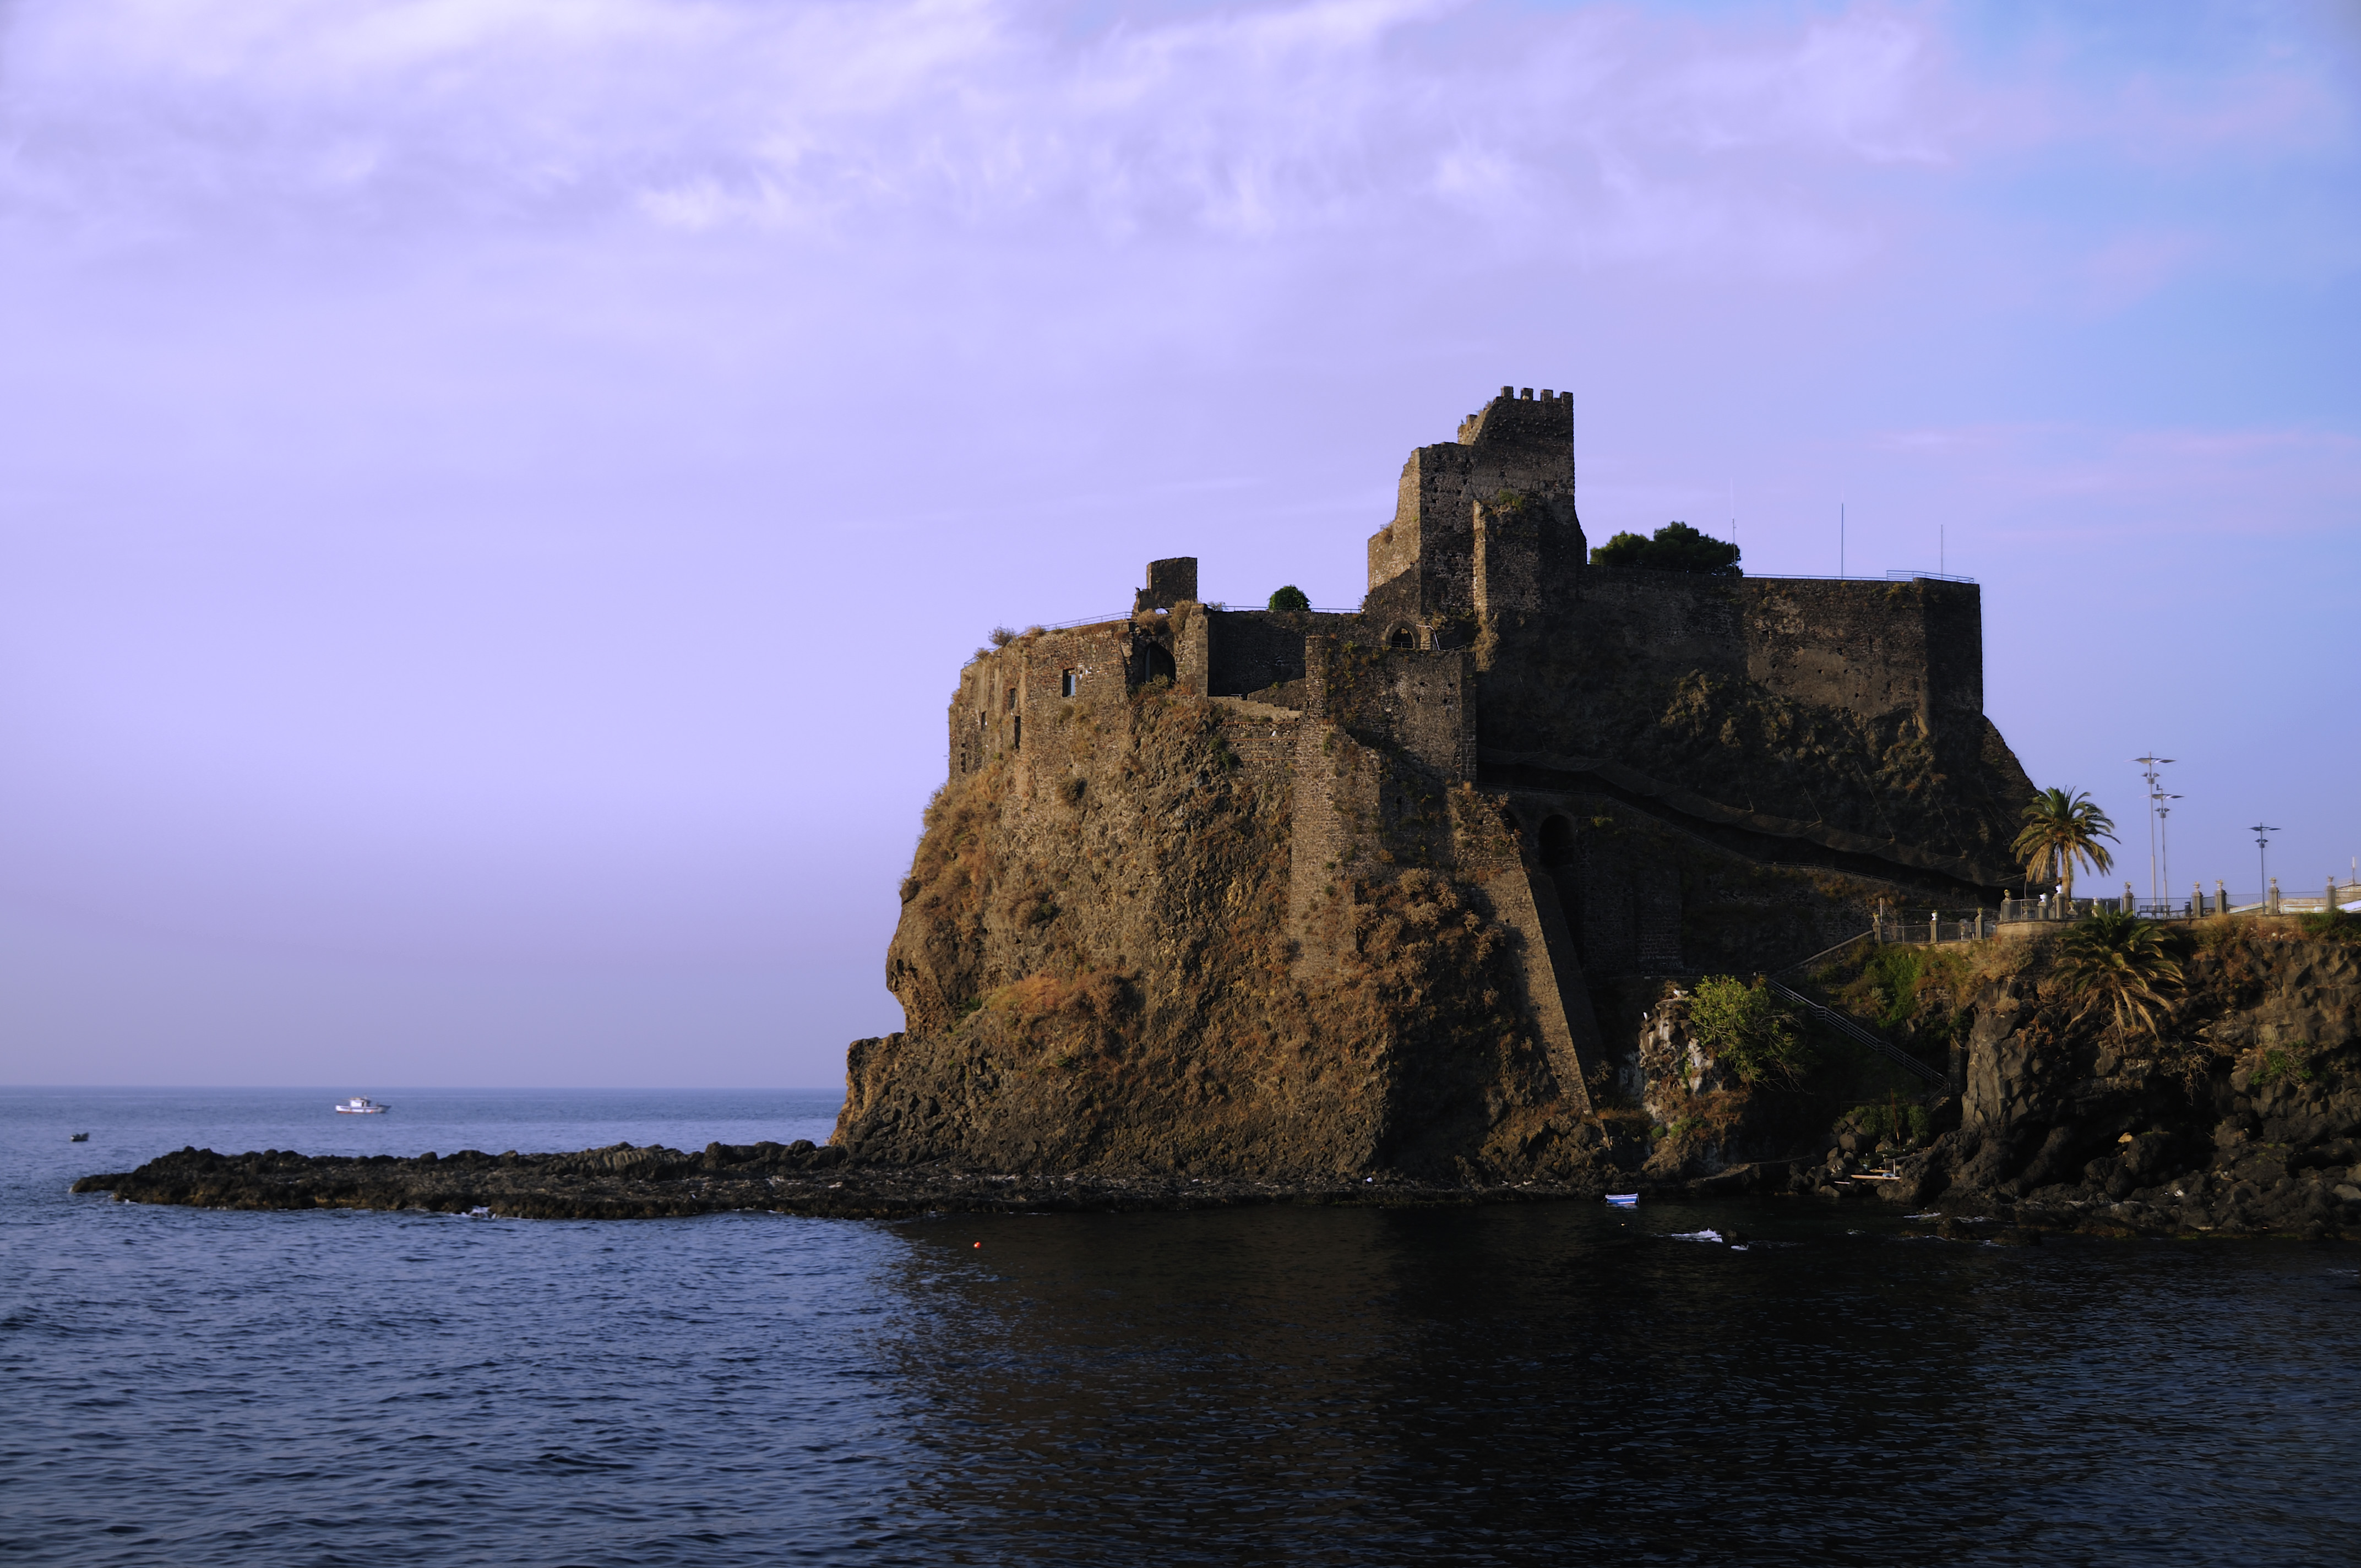 Castel - Aci Castello, Province of Catania